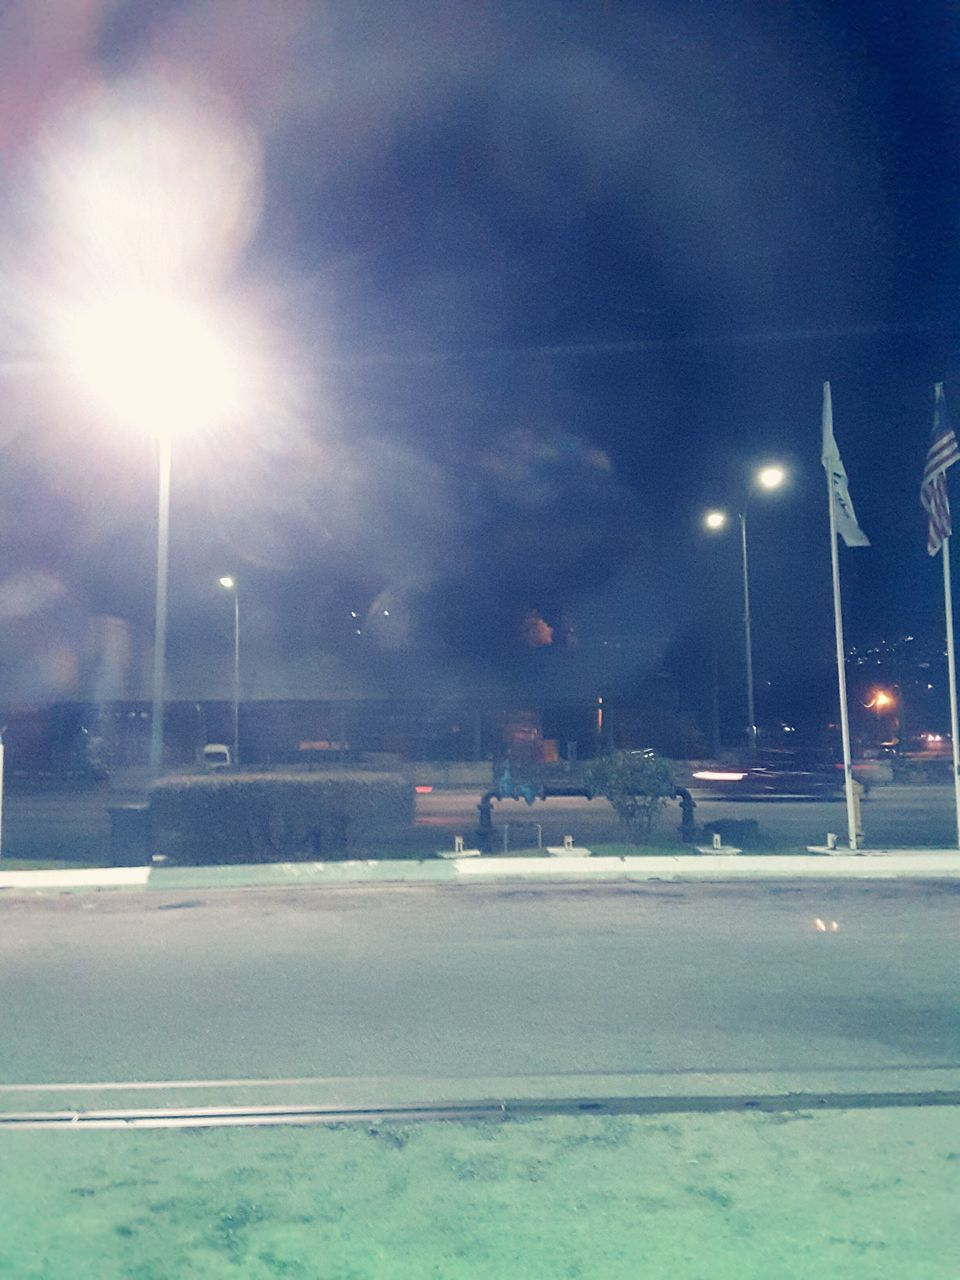 illuminated, lens flare, street light, night, transportation, road, street, car, outdoors, building exterior, sky, land vehicle, built structure, no people, high street, architecture, city, nature